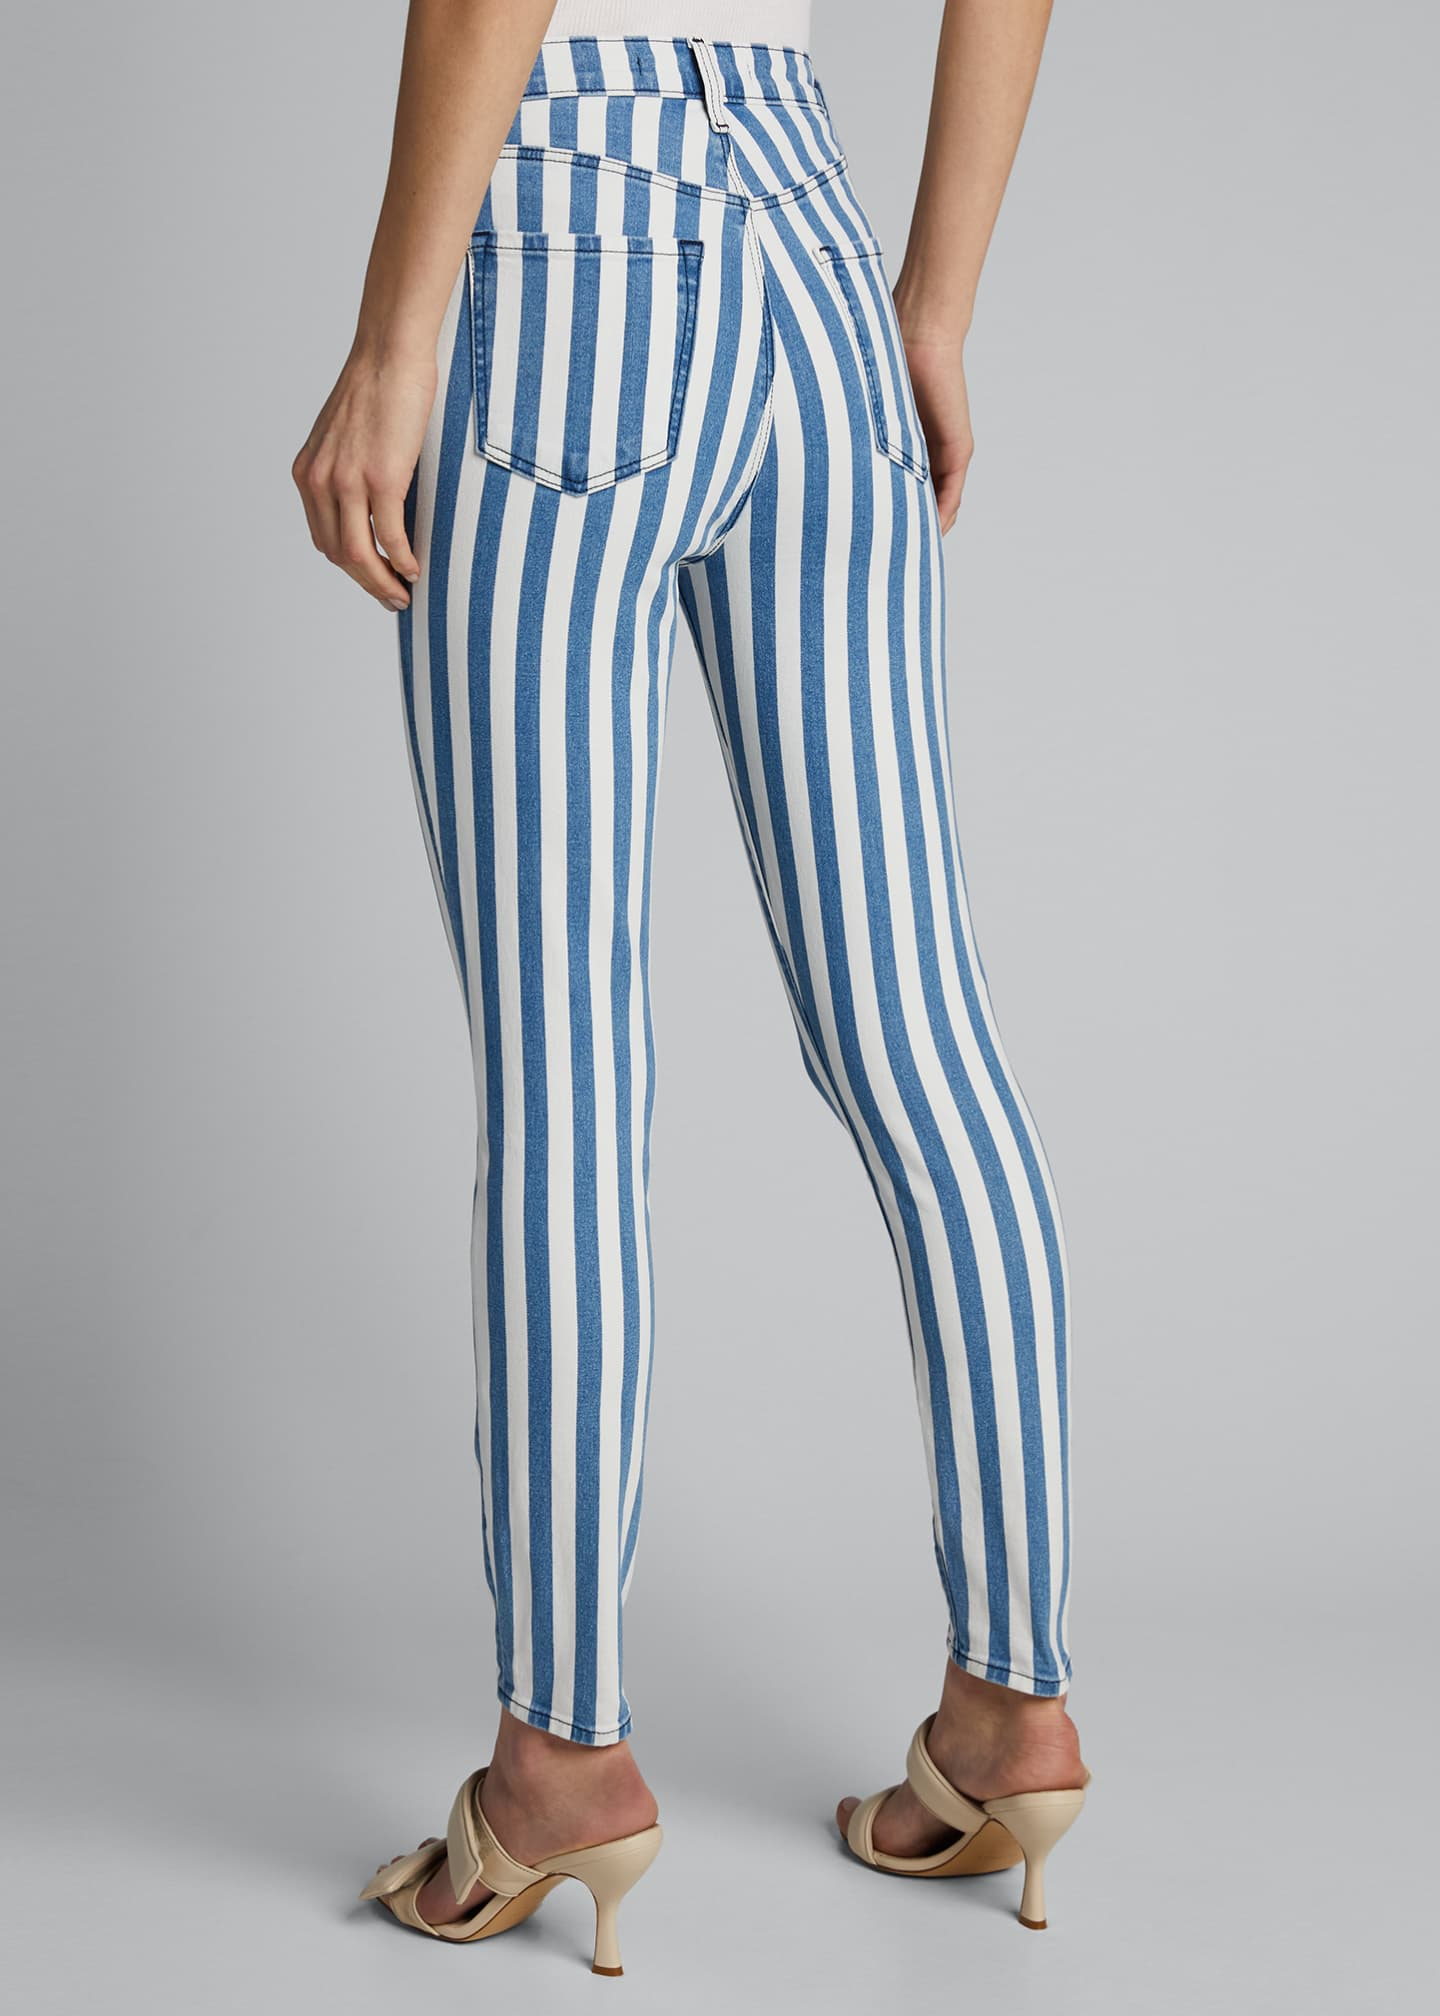 Image 2 of 4: Lillie Striped High Rise Skinny Cropped Jeans